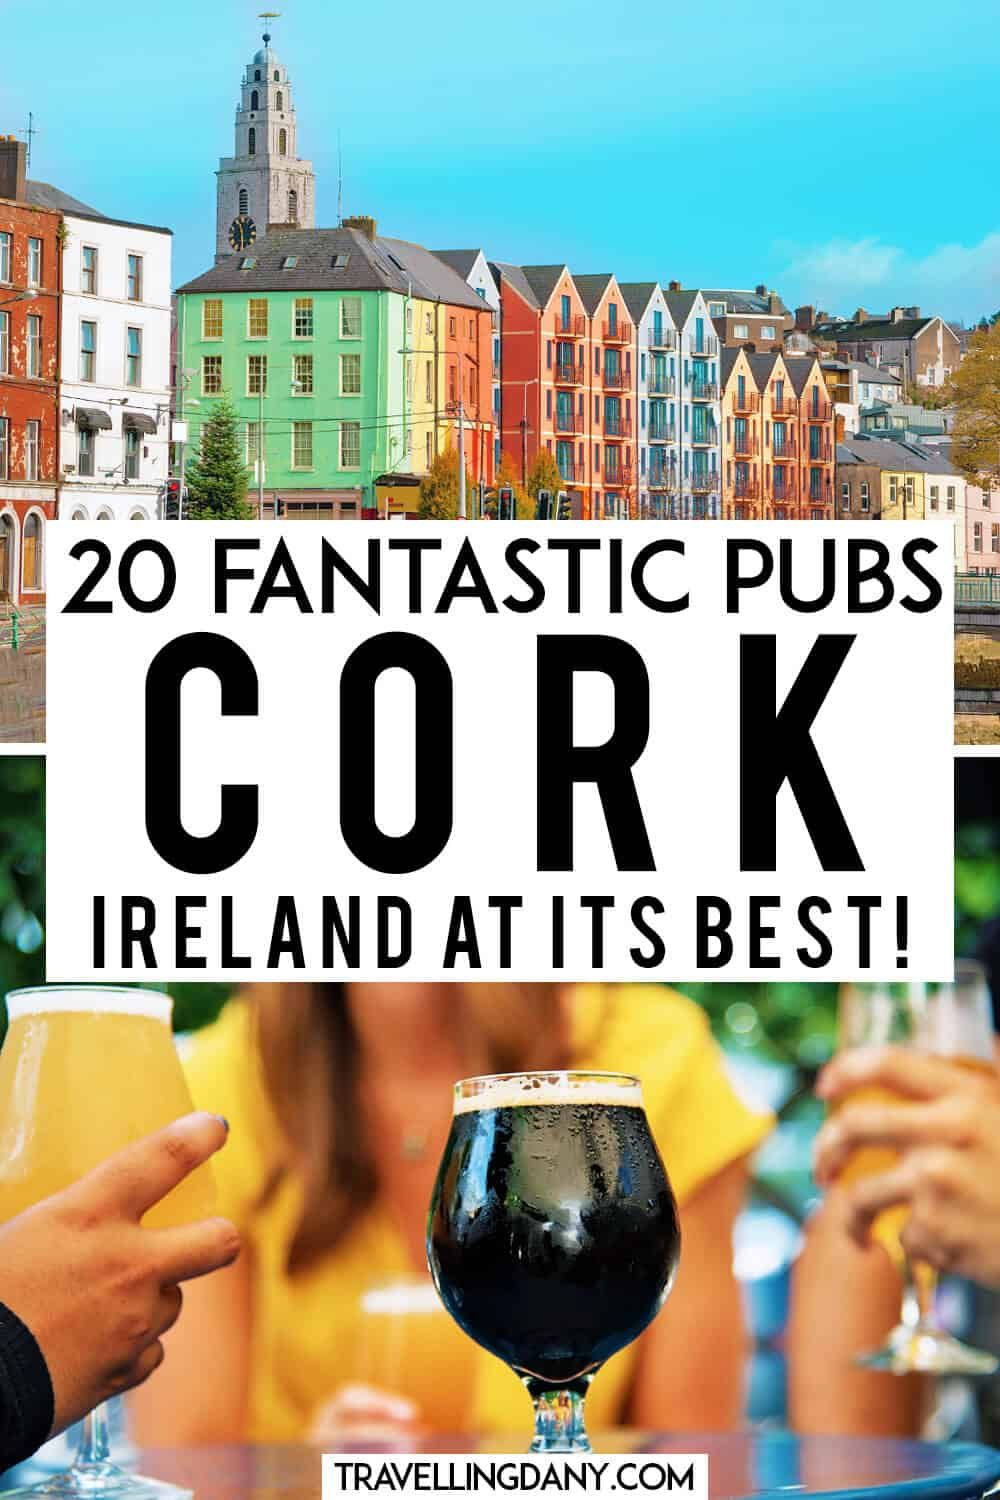 19 Quirky Pubs And Bars In Cork Ireland In 2020 Ireland Travel Guide Cork Ireland Nightlife Travel